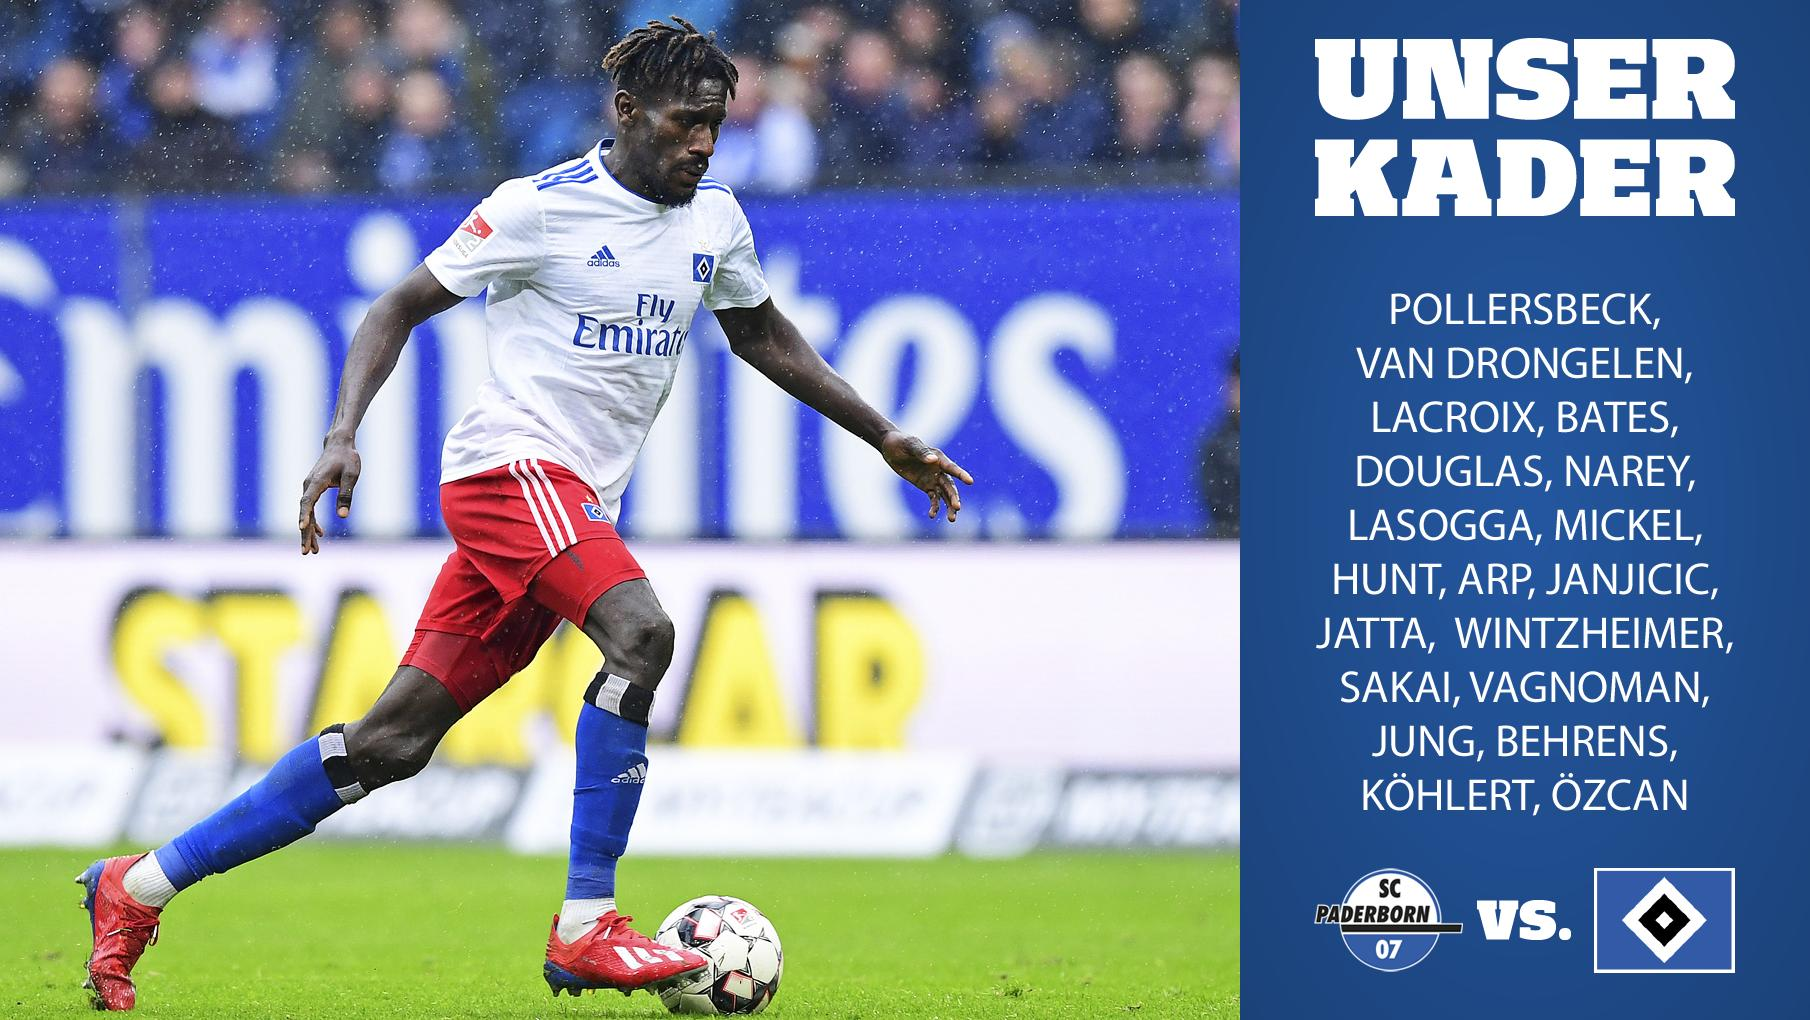 Hamburger SV on Twitter